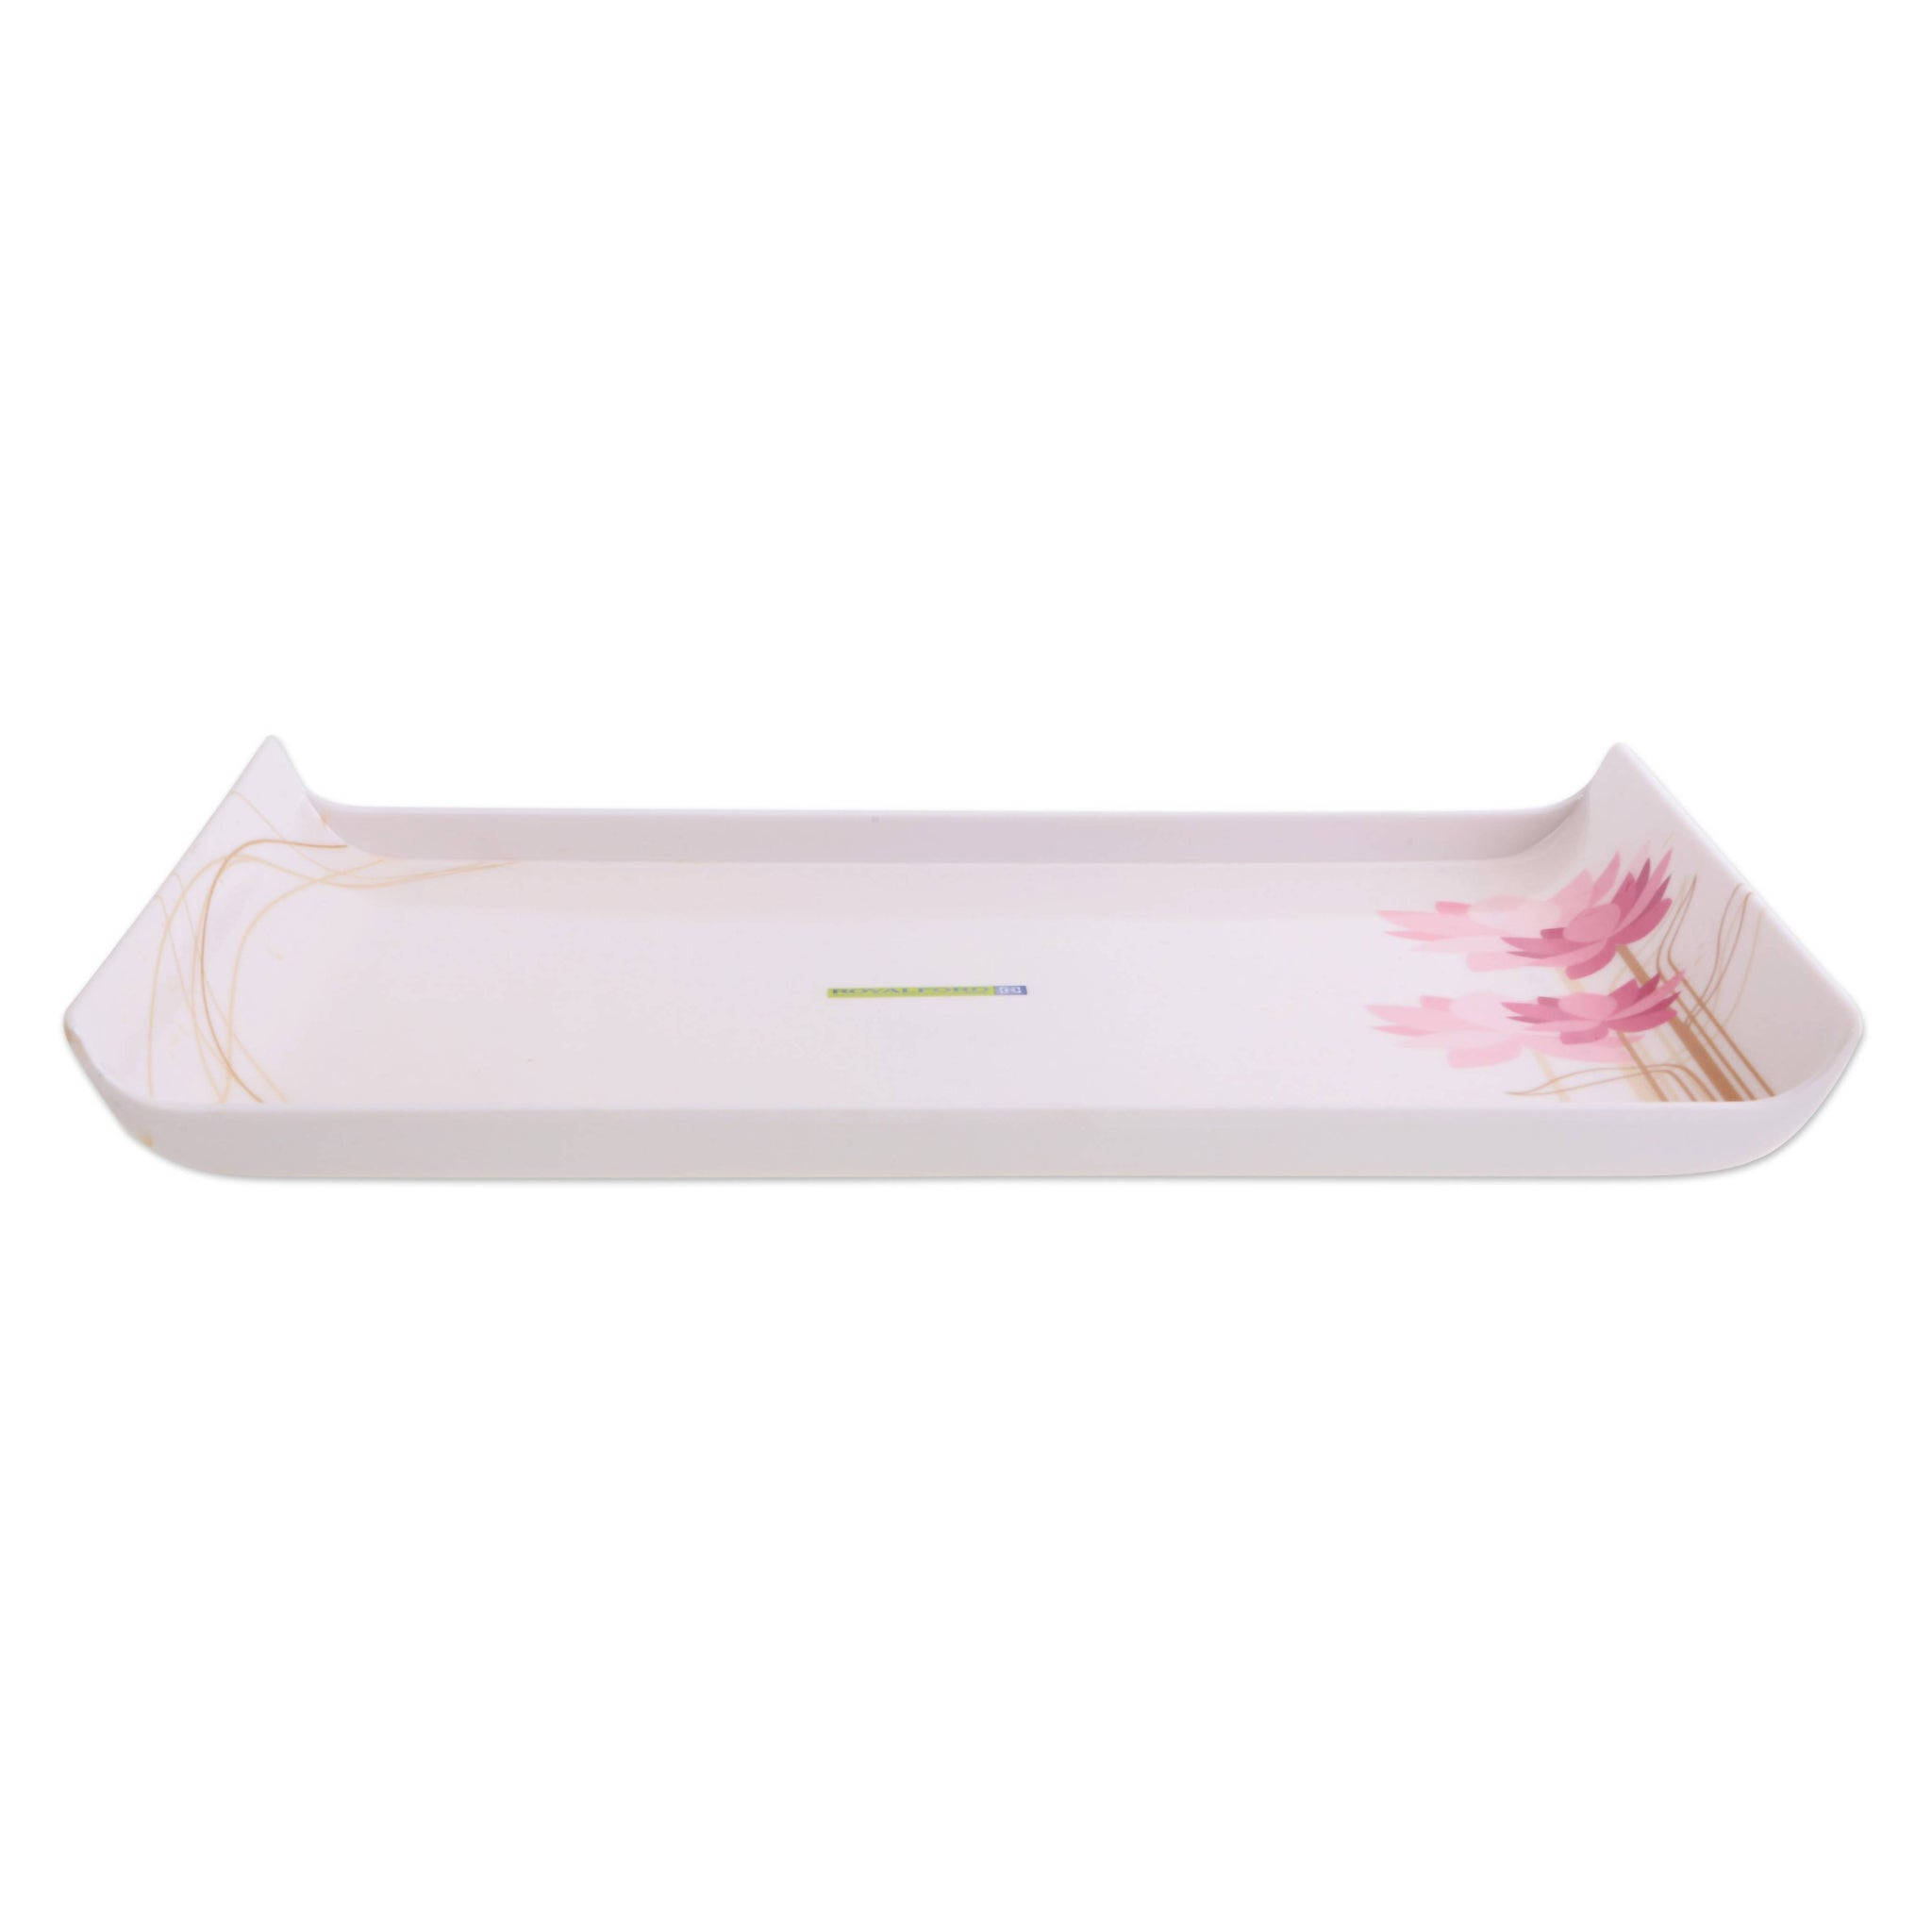 Royalford RF7809 Melamine Boat Serving Tray with Wide Handles (30.9 x 21.4 x 1.5 cm) - Lightweight Tough Material Serving Tea Coffee Tray Ideal for Serving Appetizers, Dips, Tea & Coffee Cups, Water & More - 2071MALL